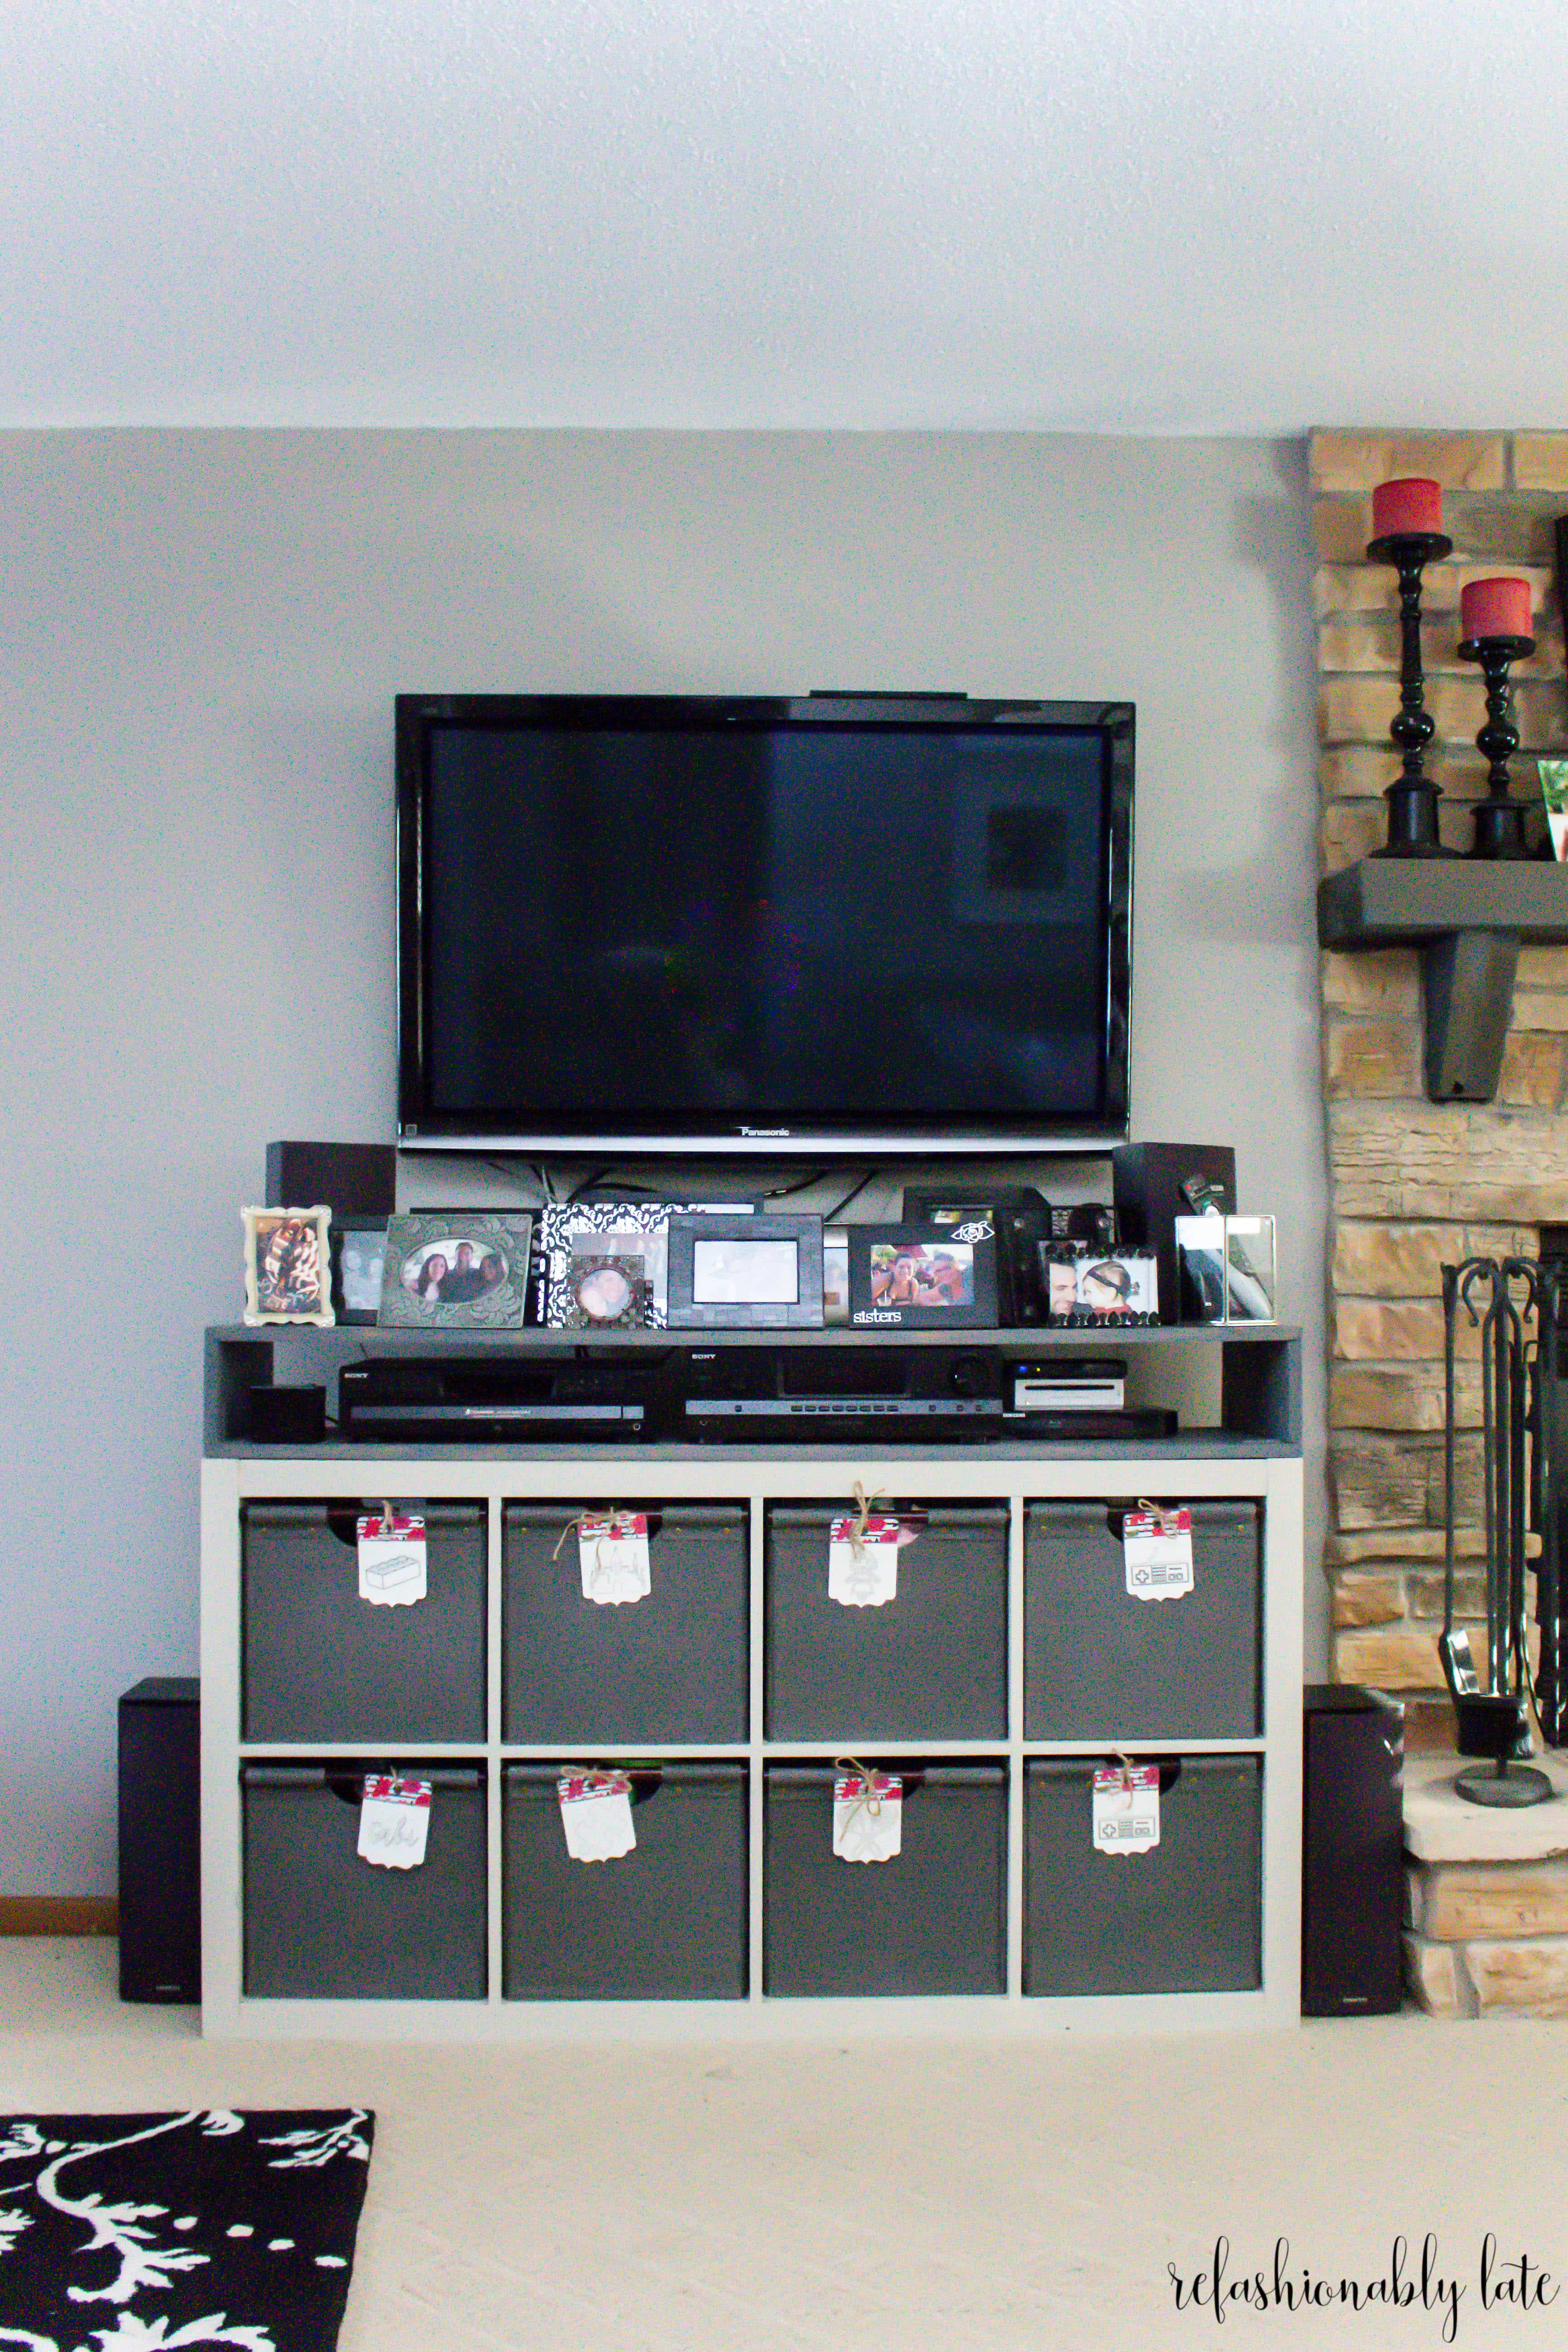 IKEA Kallax hack with a built on shelf at the top with stereo equipment inside and a TV mounted on the wall